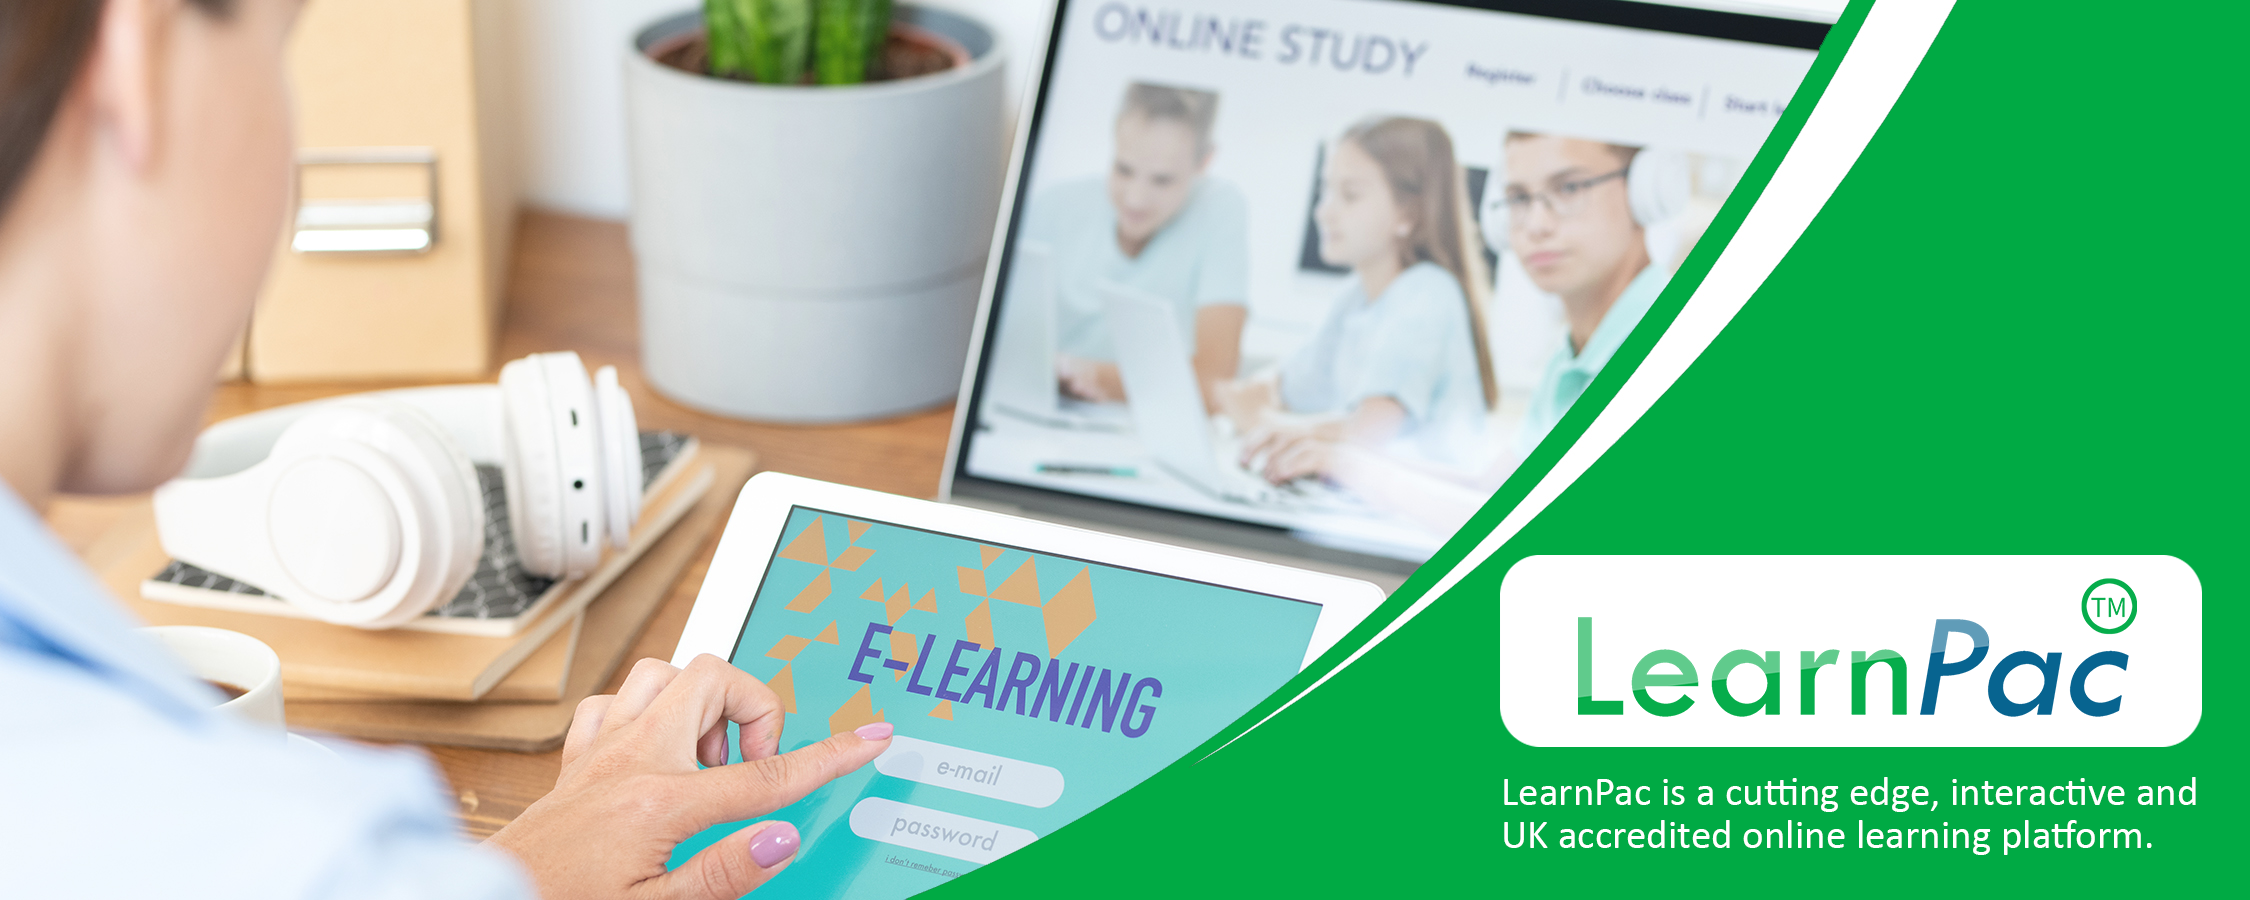 Health and Safety - eLearning Course - CPD Certified - LearnPac Systems UK -